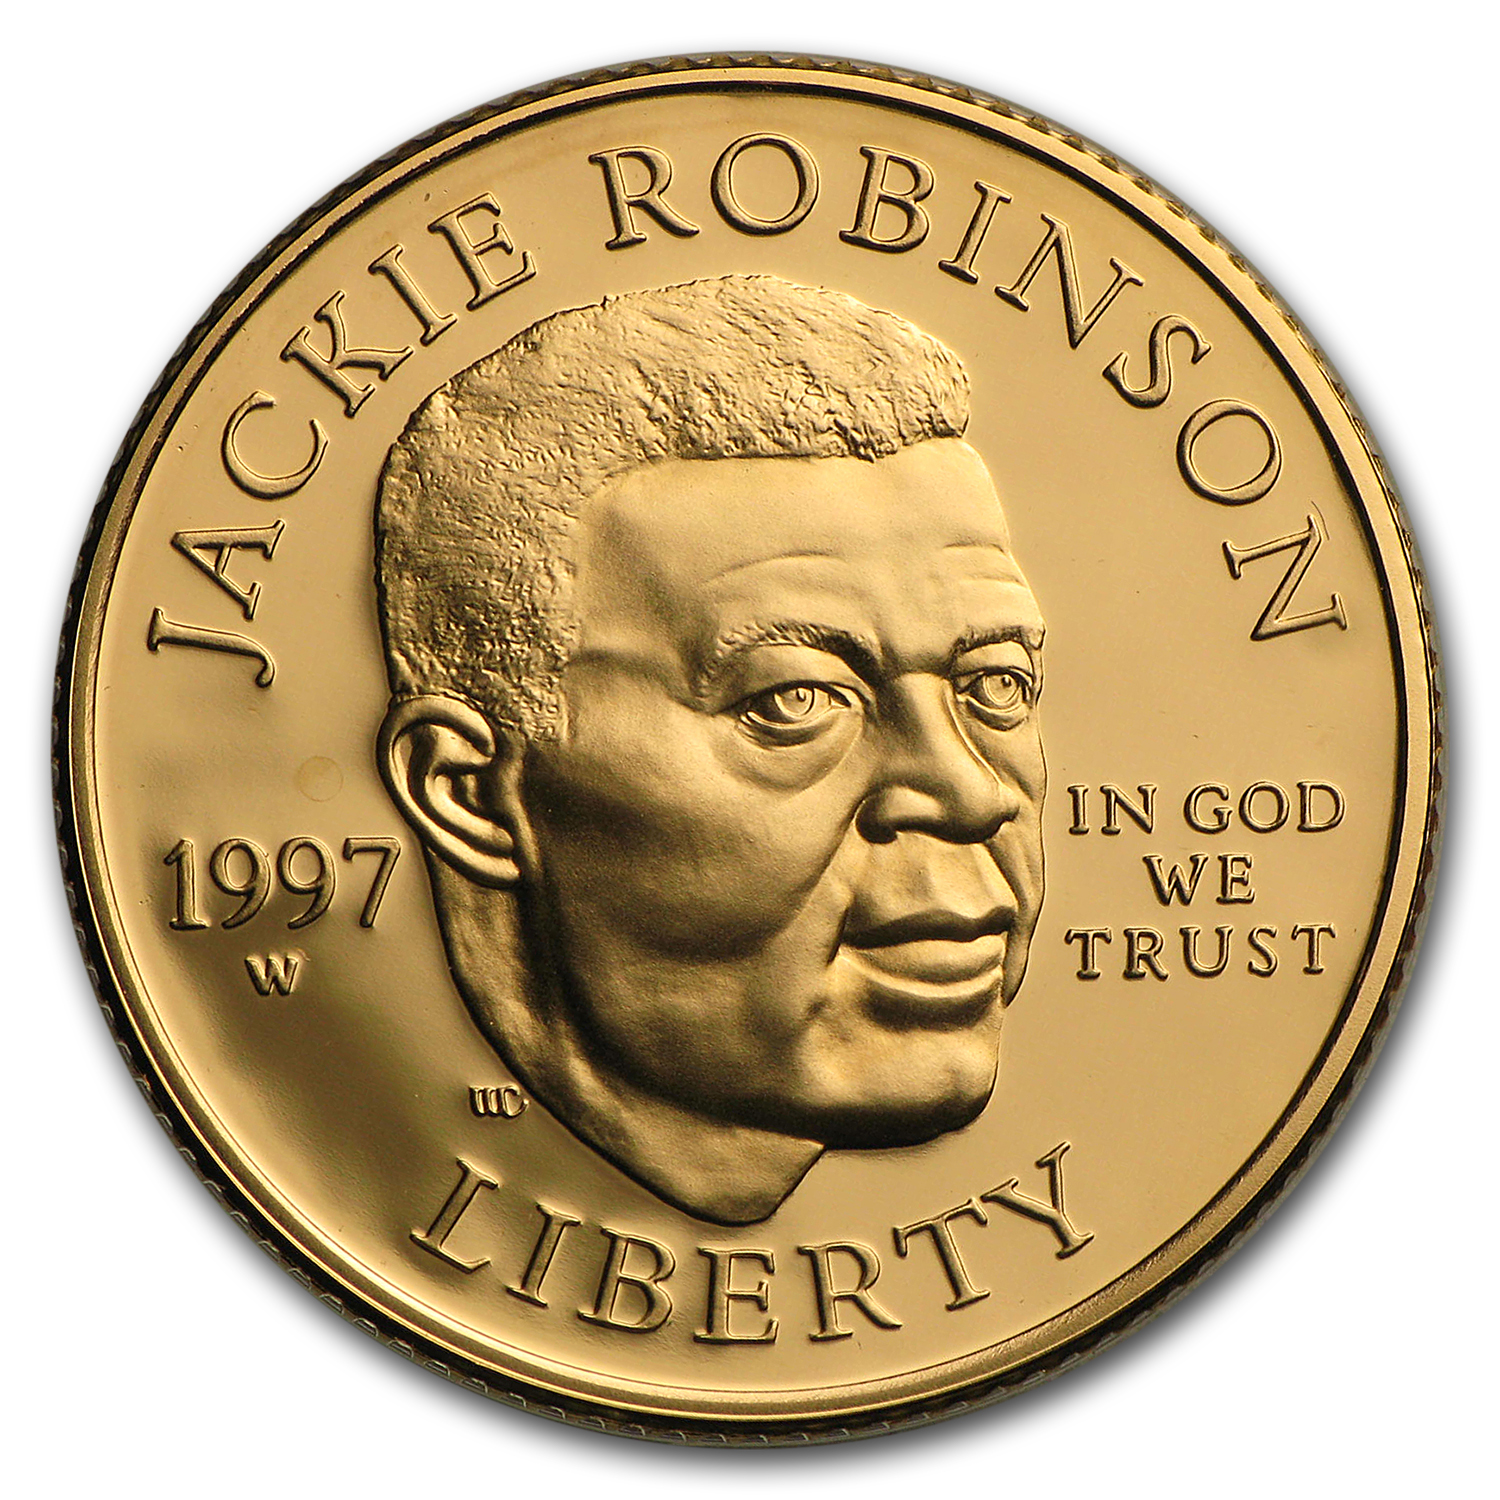 1997-W Gold $5 Commemorative Jackie Robinson Proof